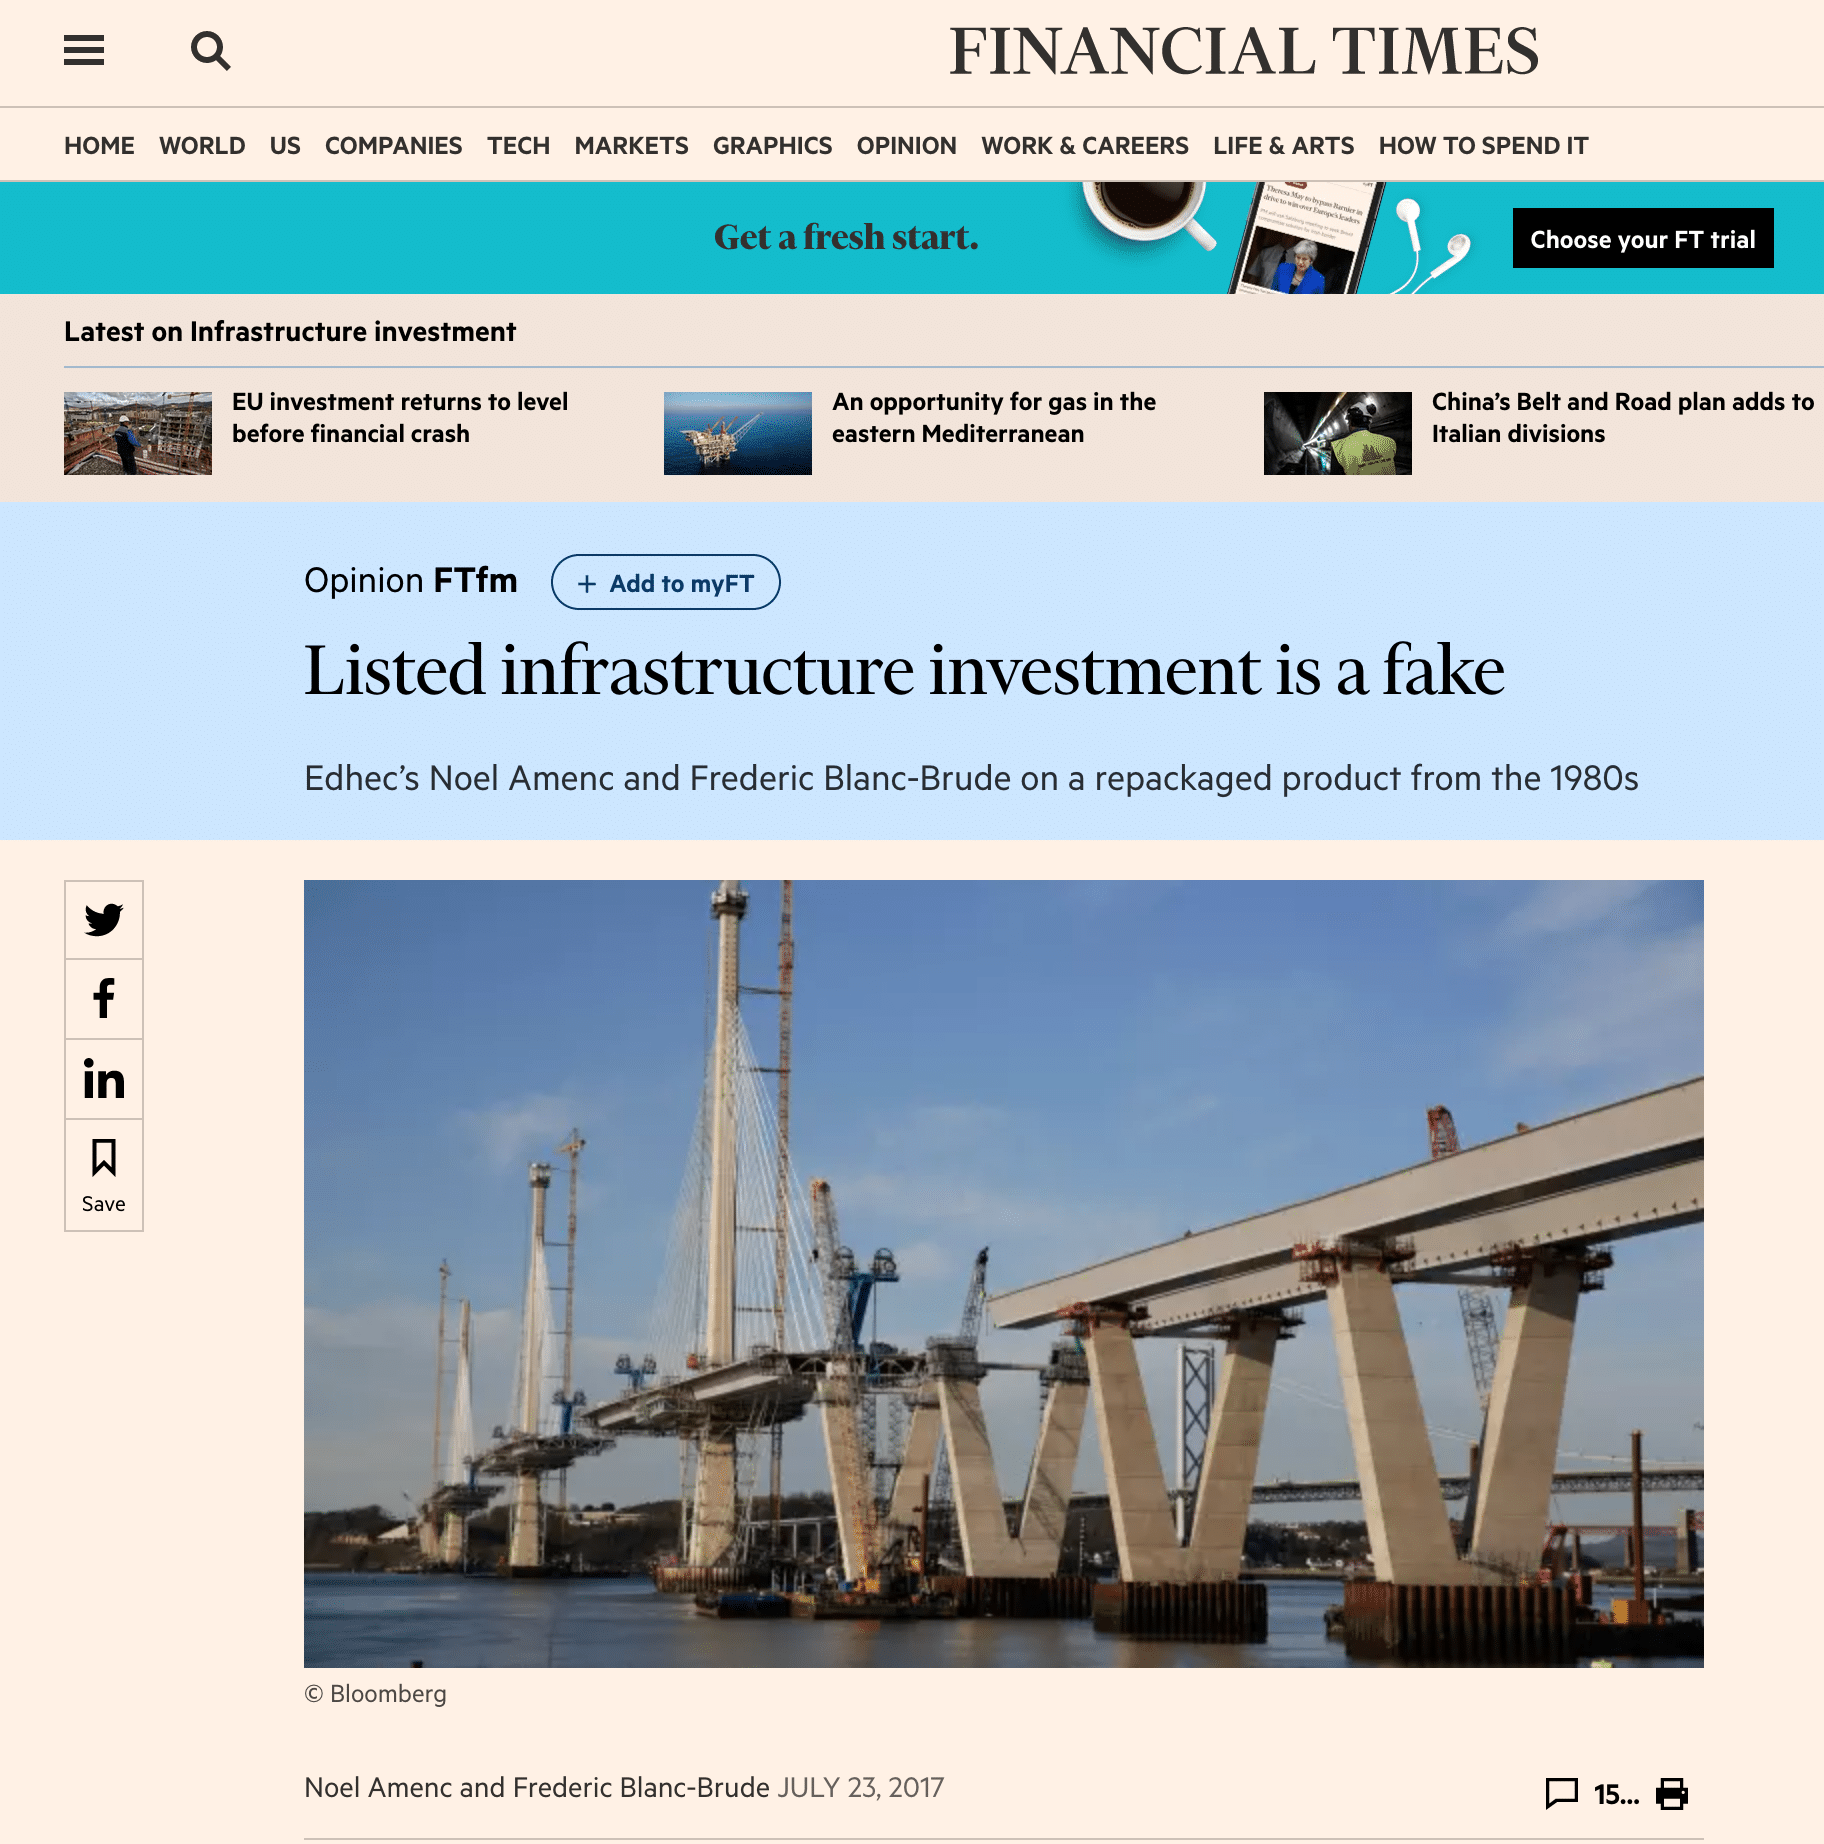 Listed infrastructure investment is a great story but it's fake